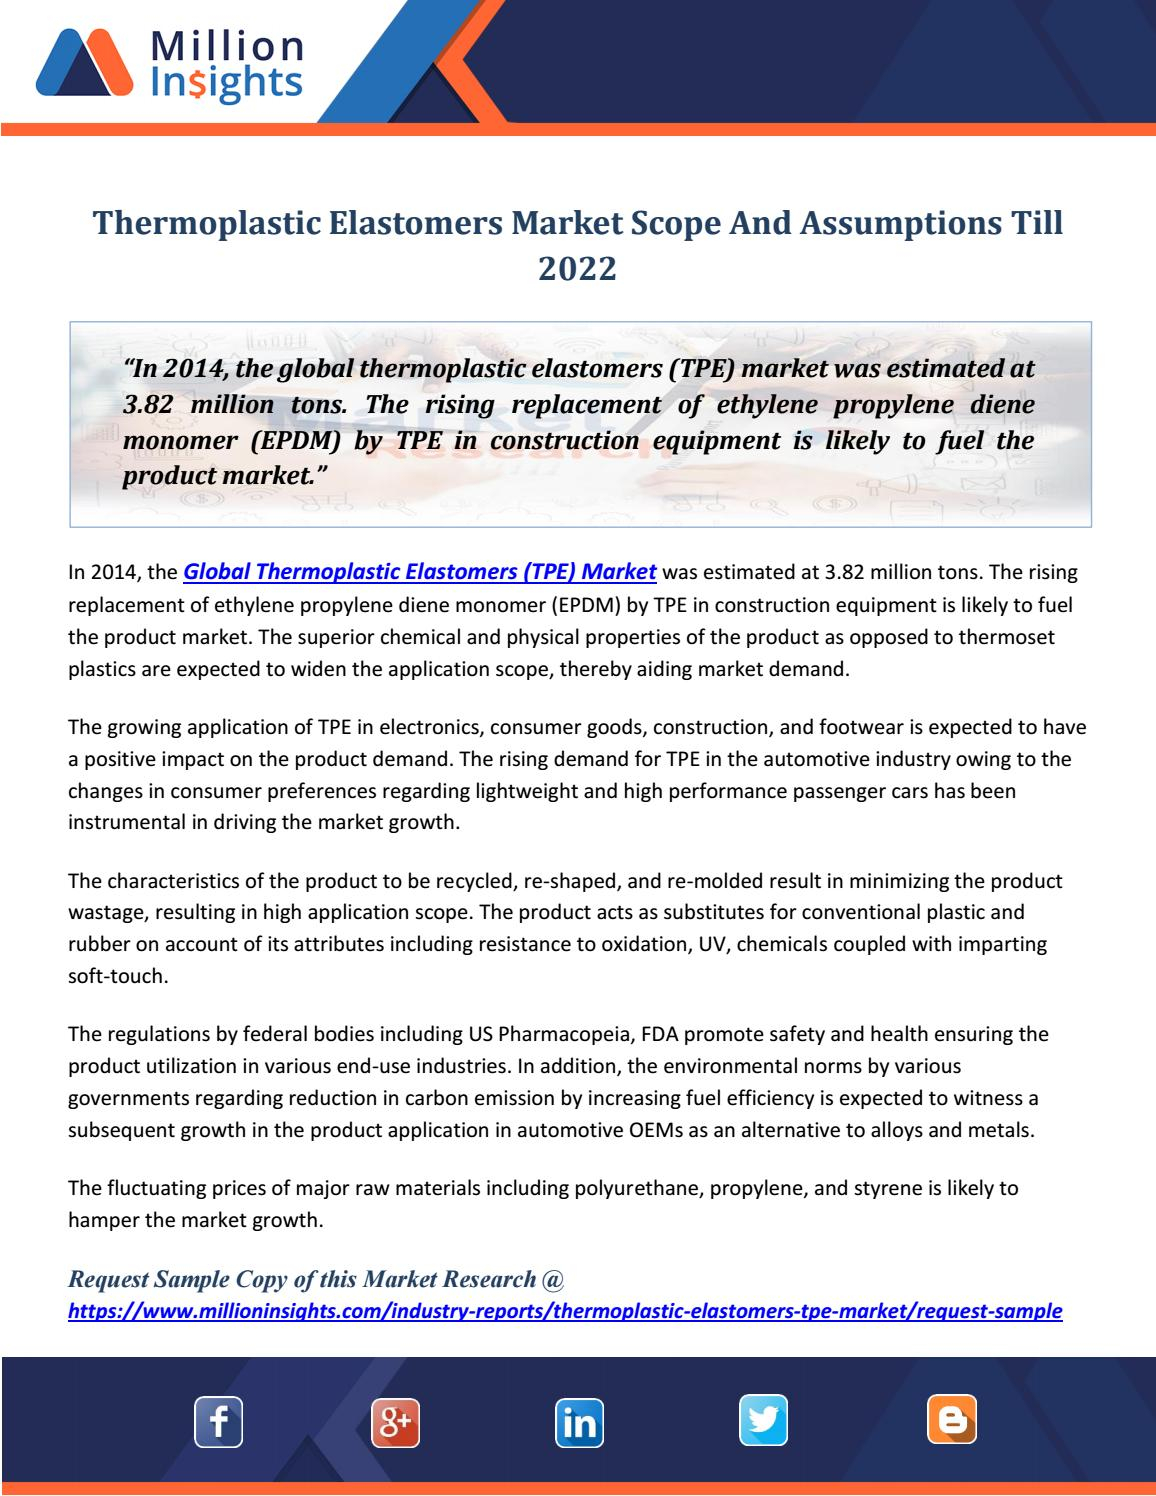 Thermoplastic Elastomers Market Scope And Assumptions Till 2022 by